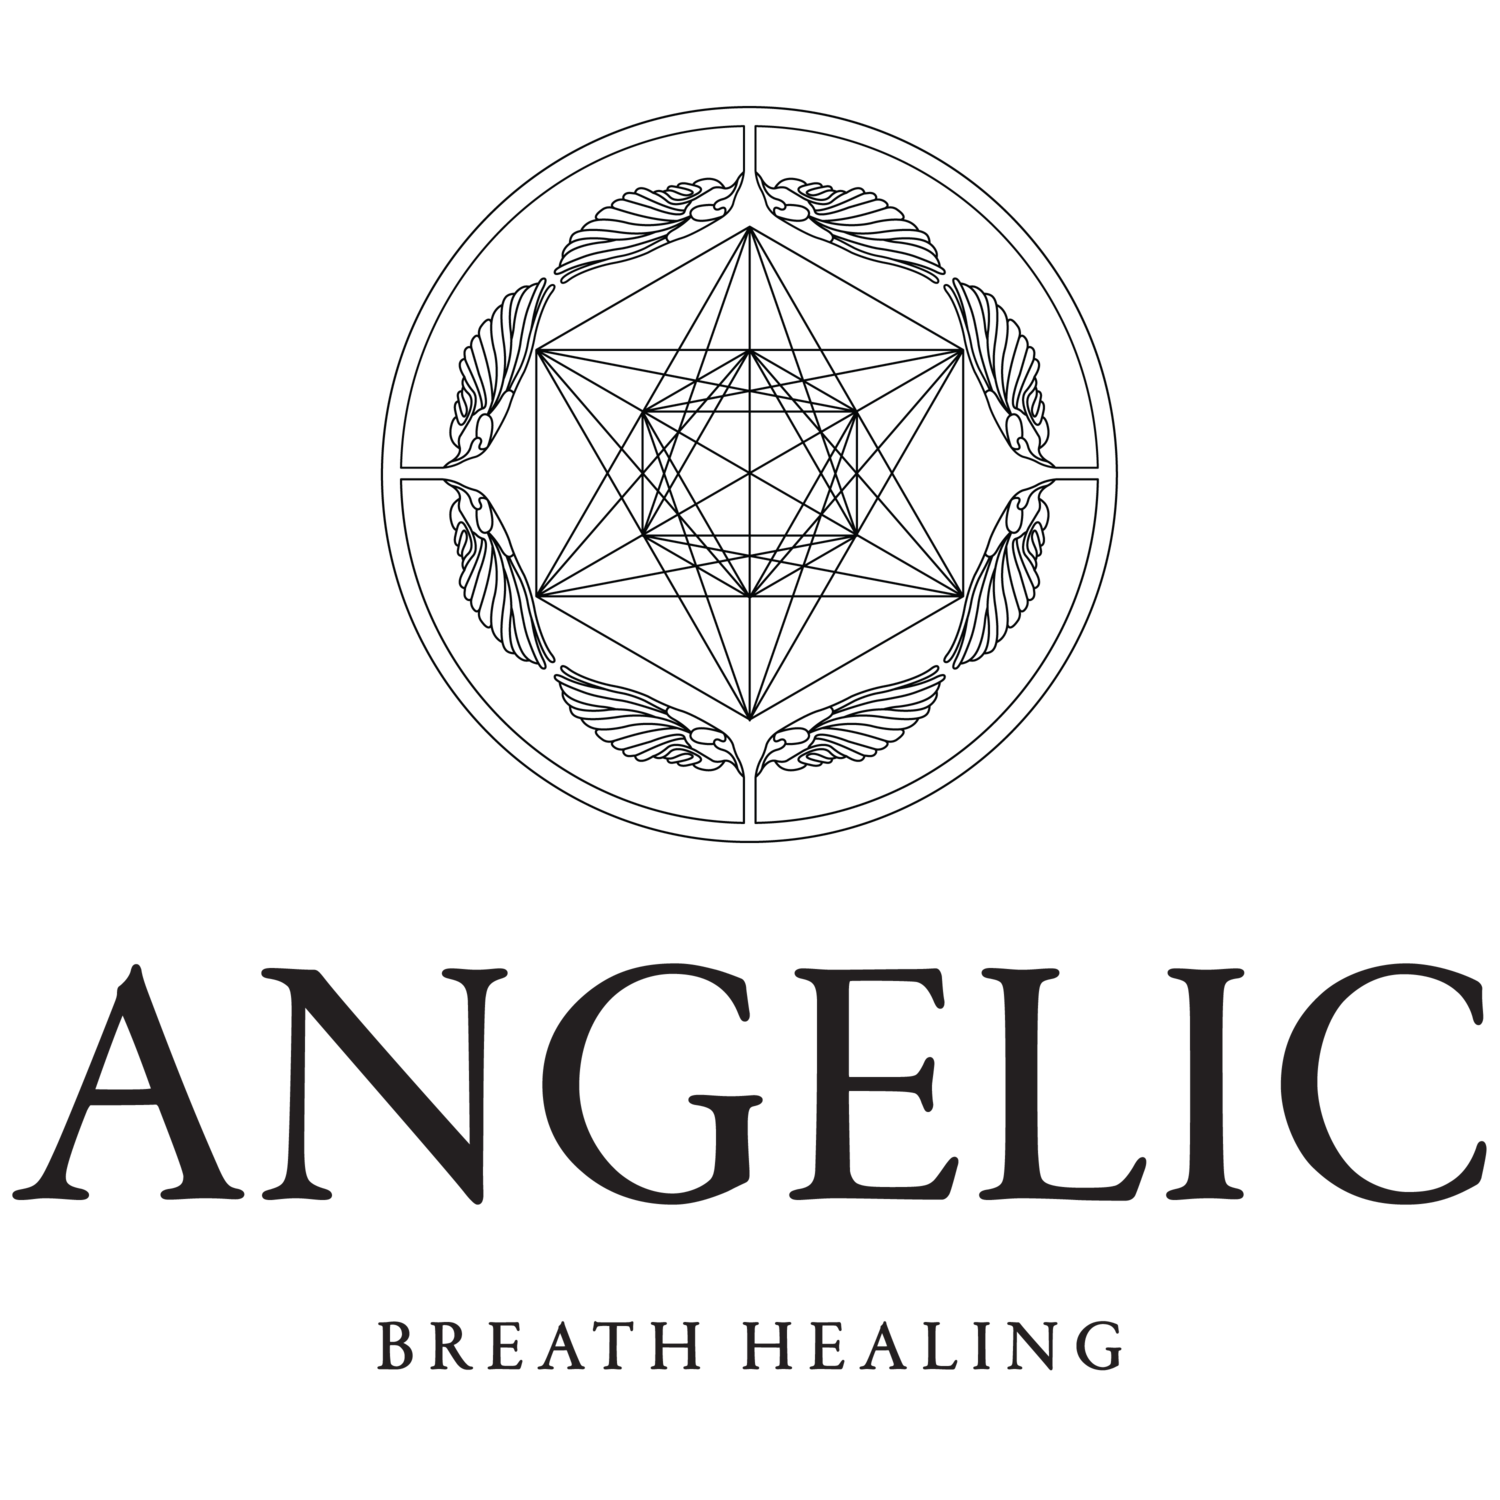 Angelic Breath Healing